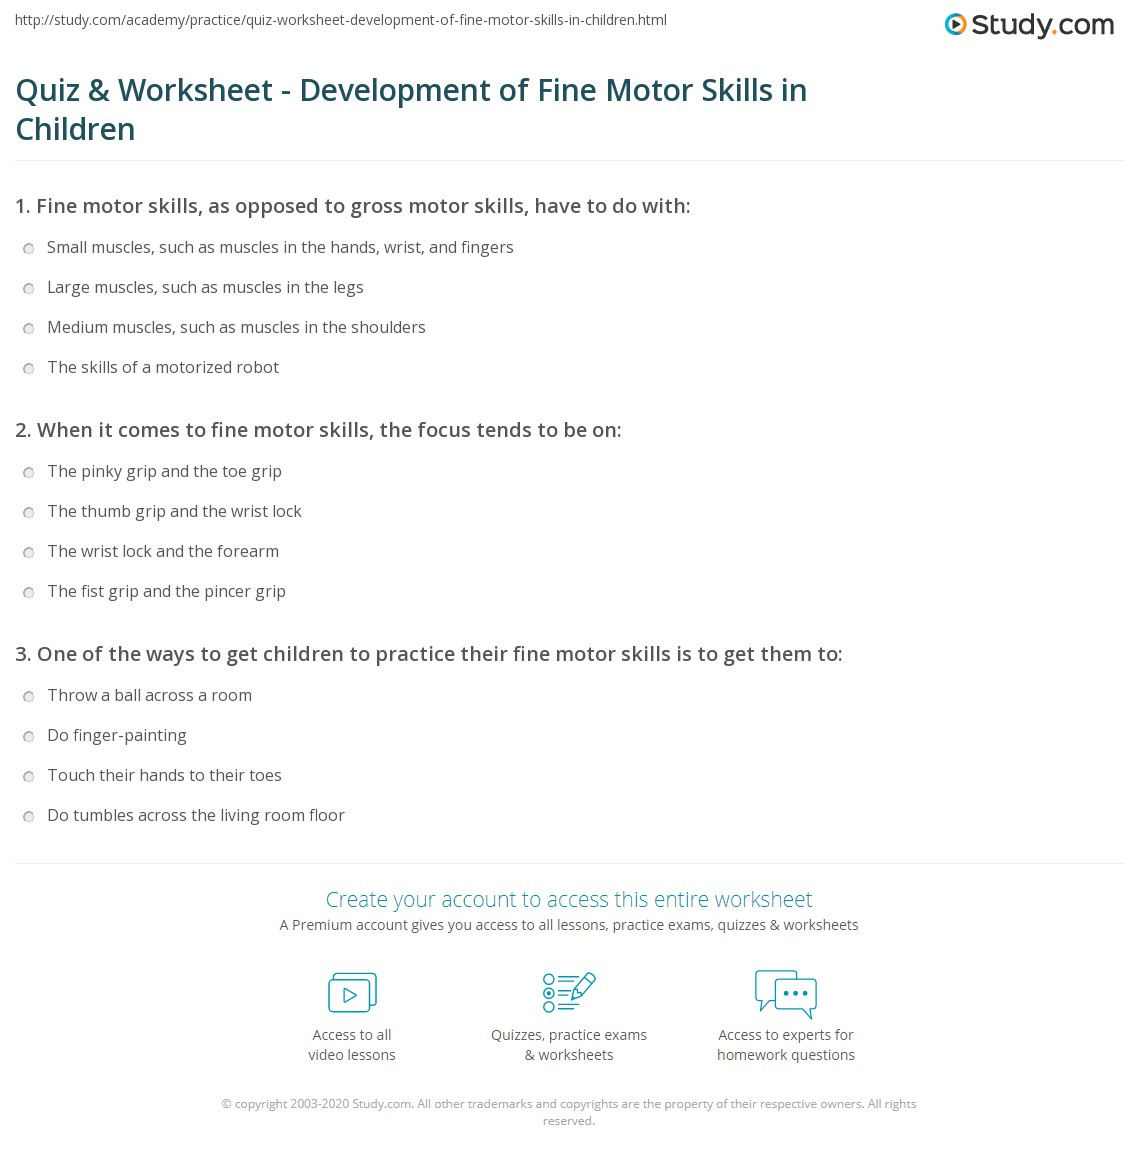 Worksheets Fine Motor Skills Worksheets quiz worksheet development of fine motor skills in children print what are definition examples worksheet